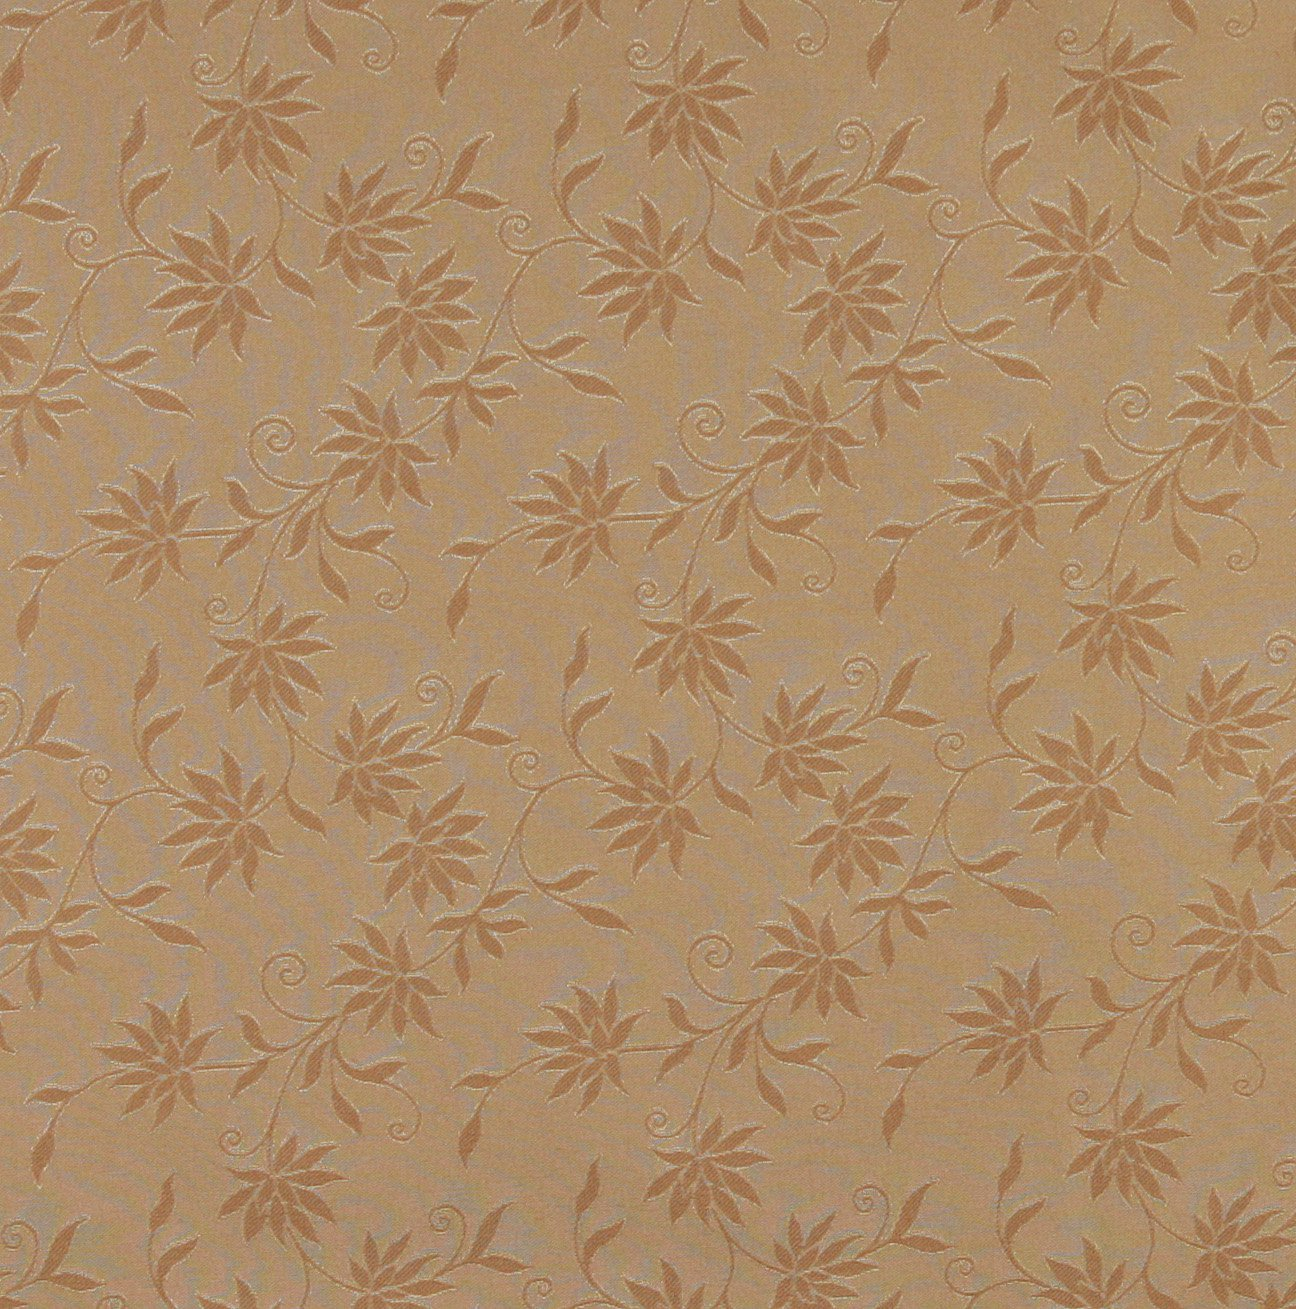 54 Wide C126 Gold Floral Jacquard Linen Look